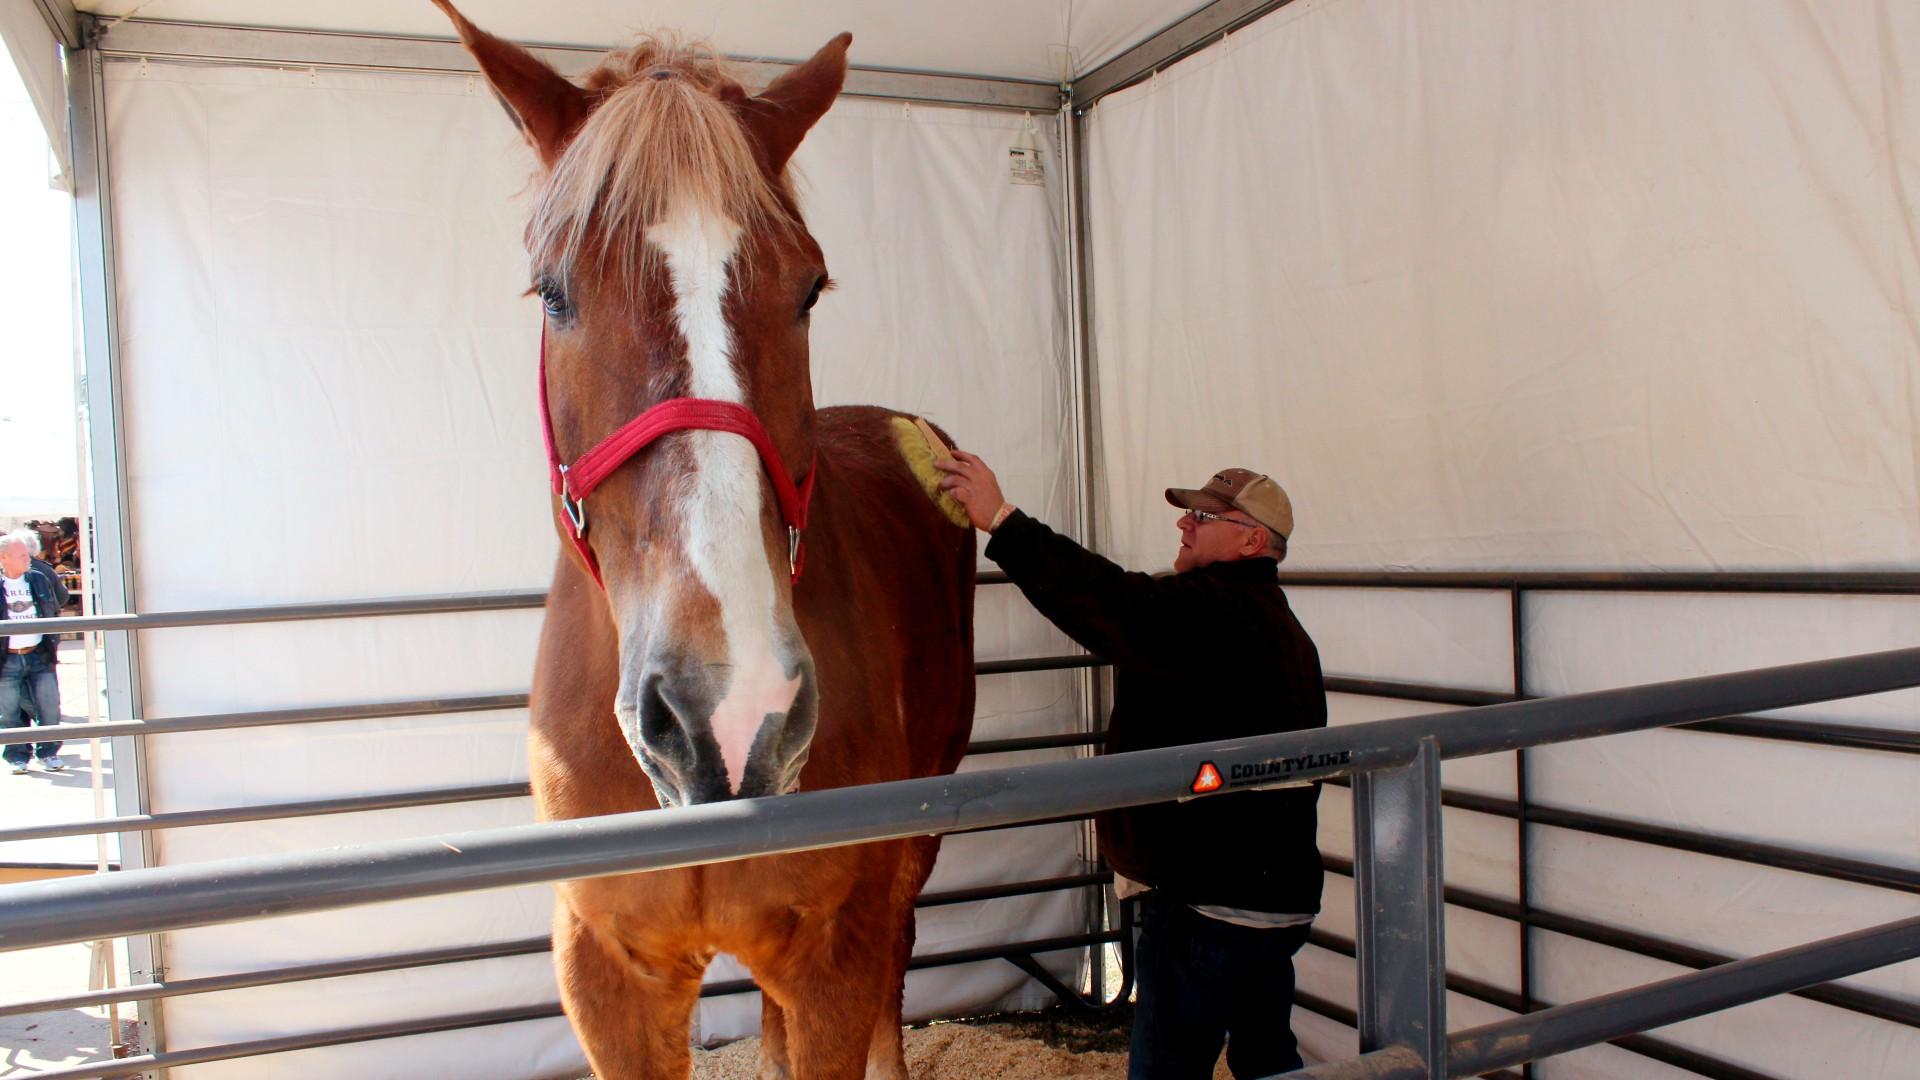 Jerry Gilbert brushes Big Jake at the Midwest Horse Fair in Madison, Wisc., in this Friday, April 11, 2014. (AP Photo/Carrie Antlfinger, File)